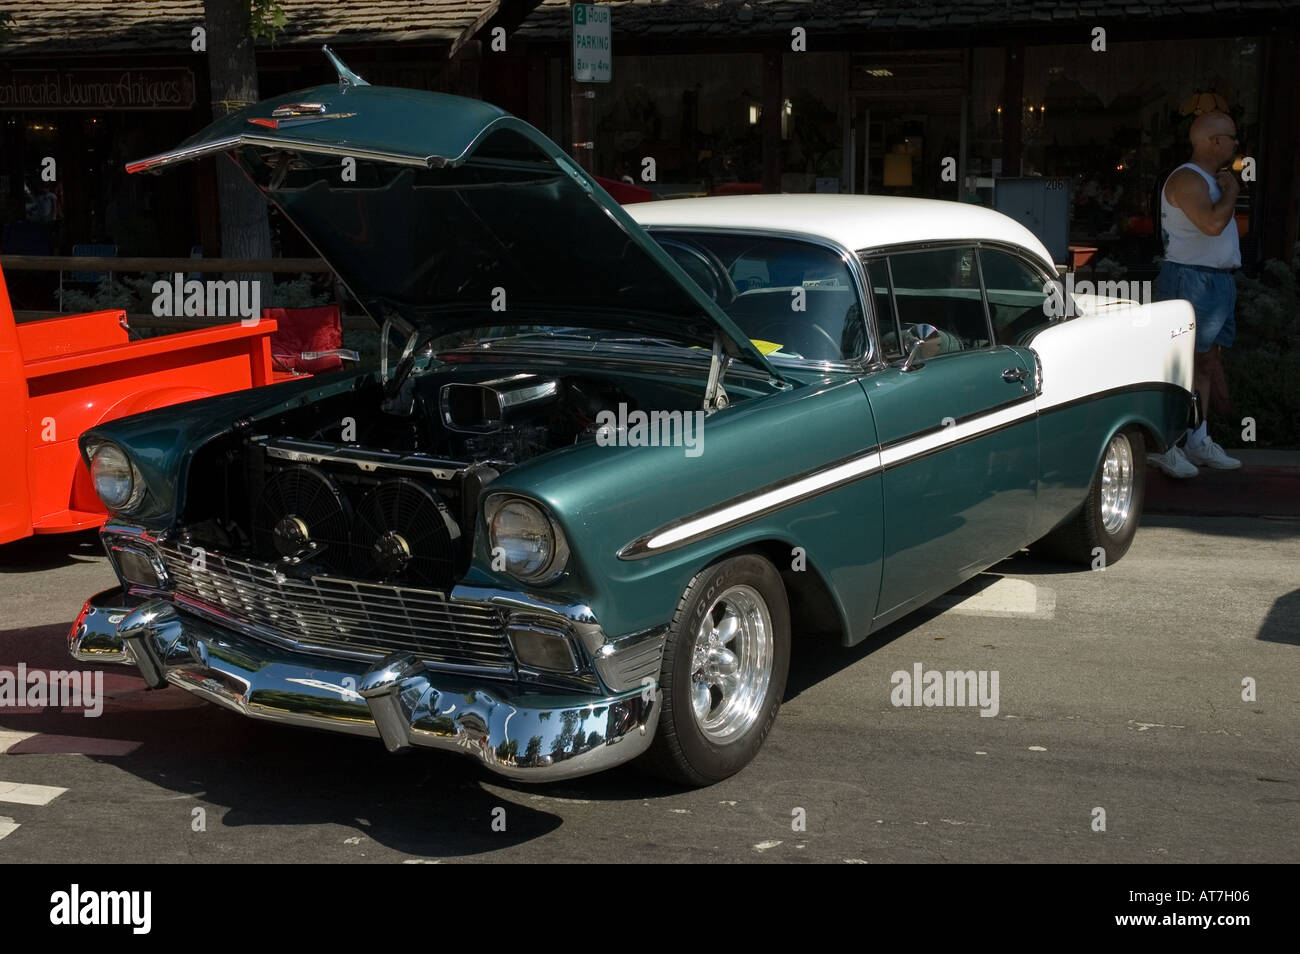 Los angeles california car show antique customized chevy chevrolet bel air green white open hood engine